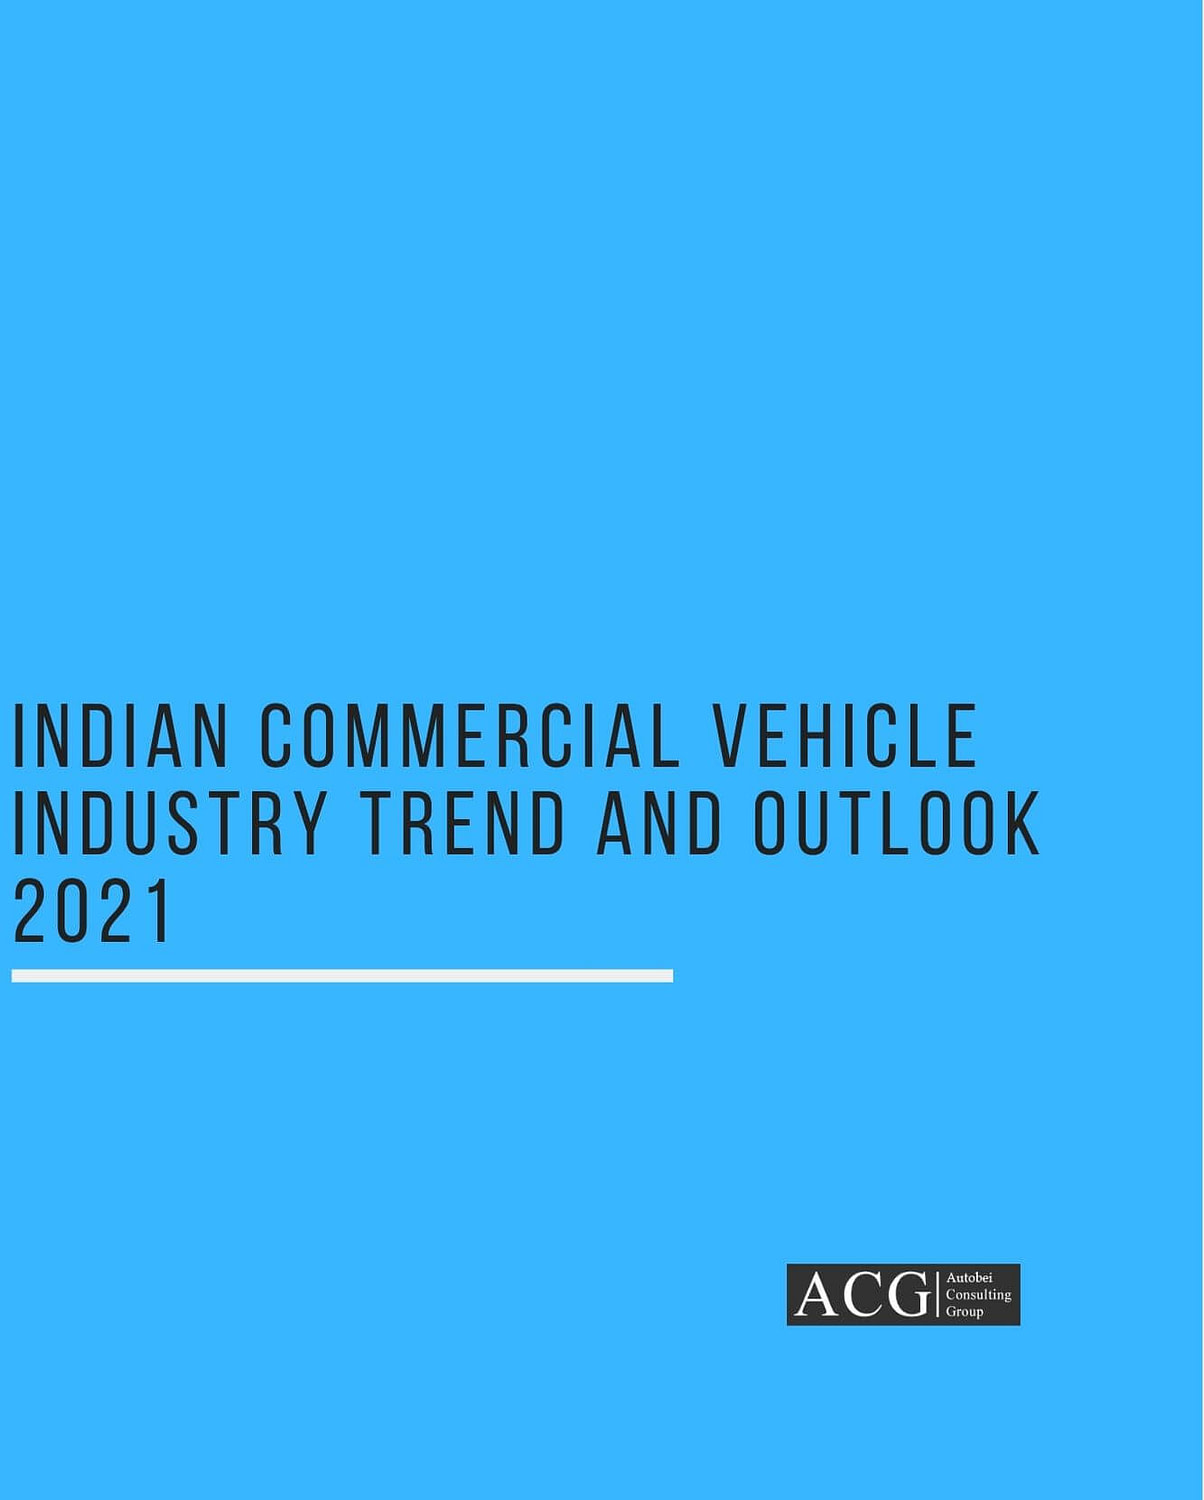 Indian Commercial Vehicle Industry Outlook 2021